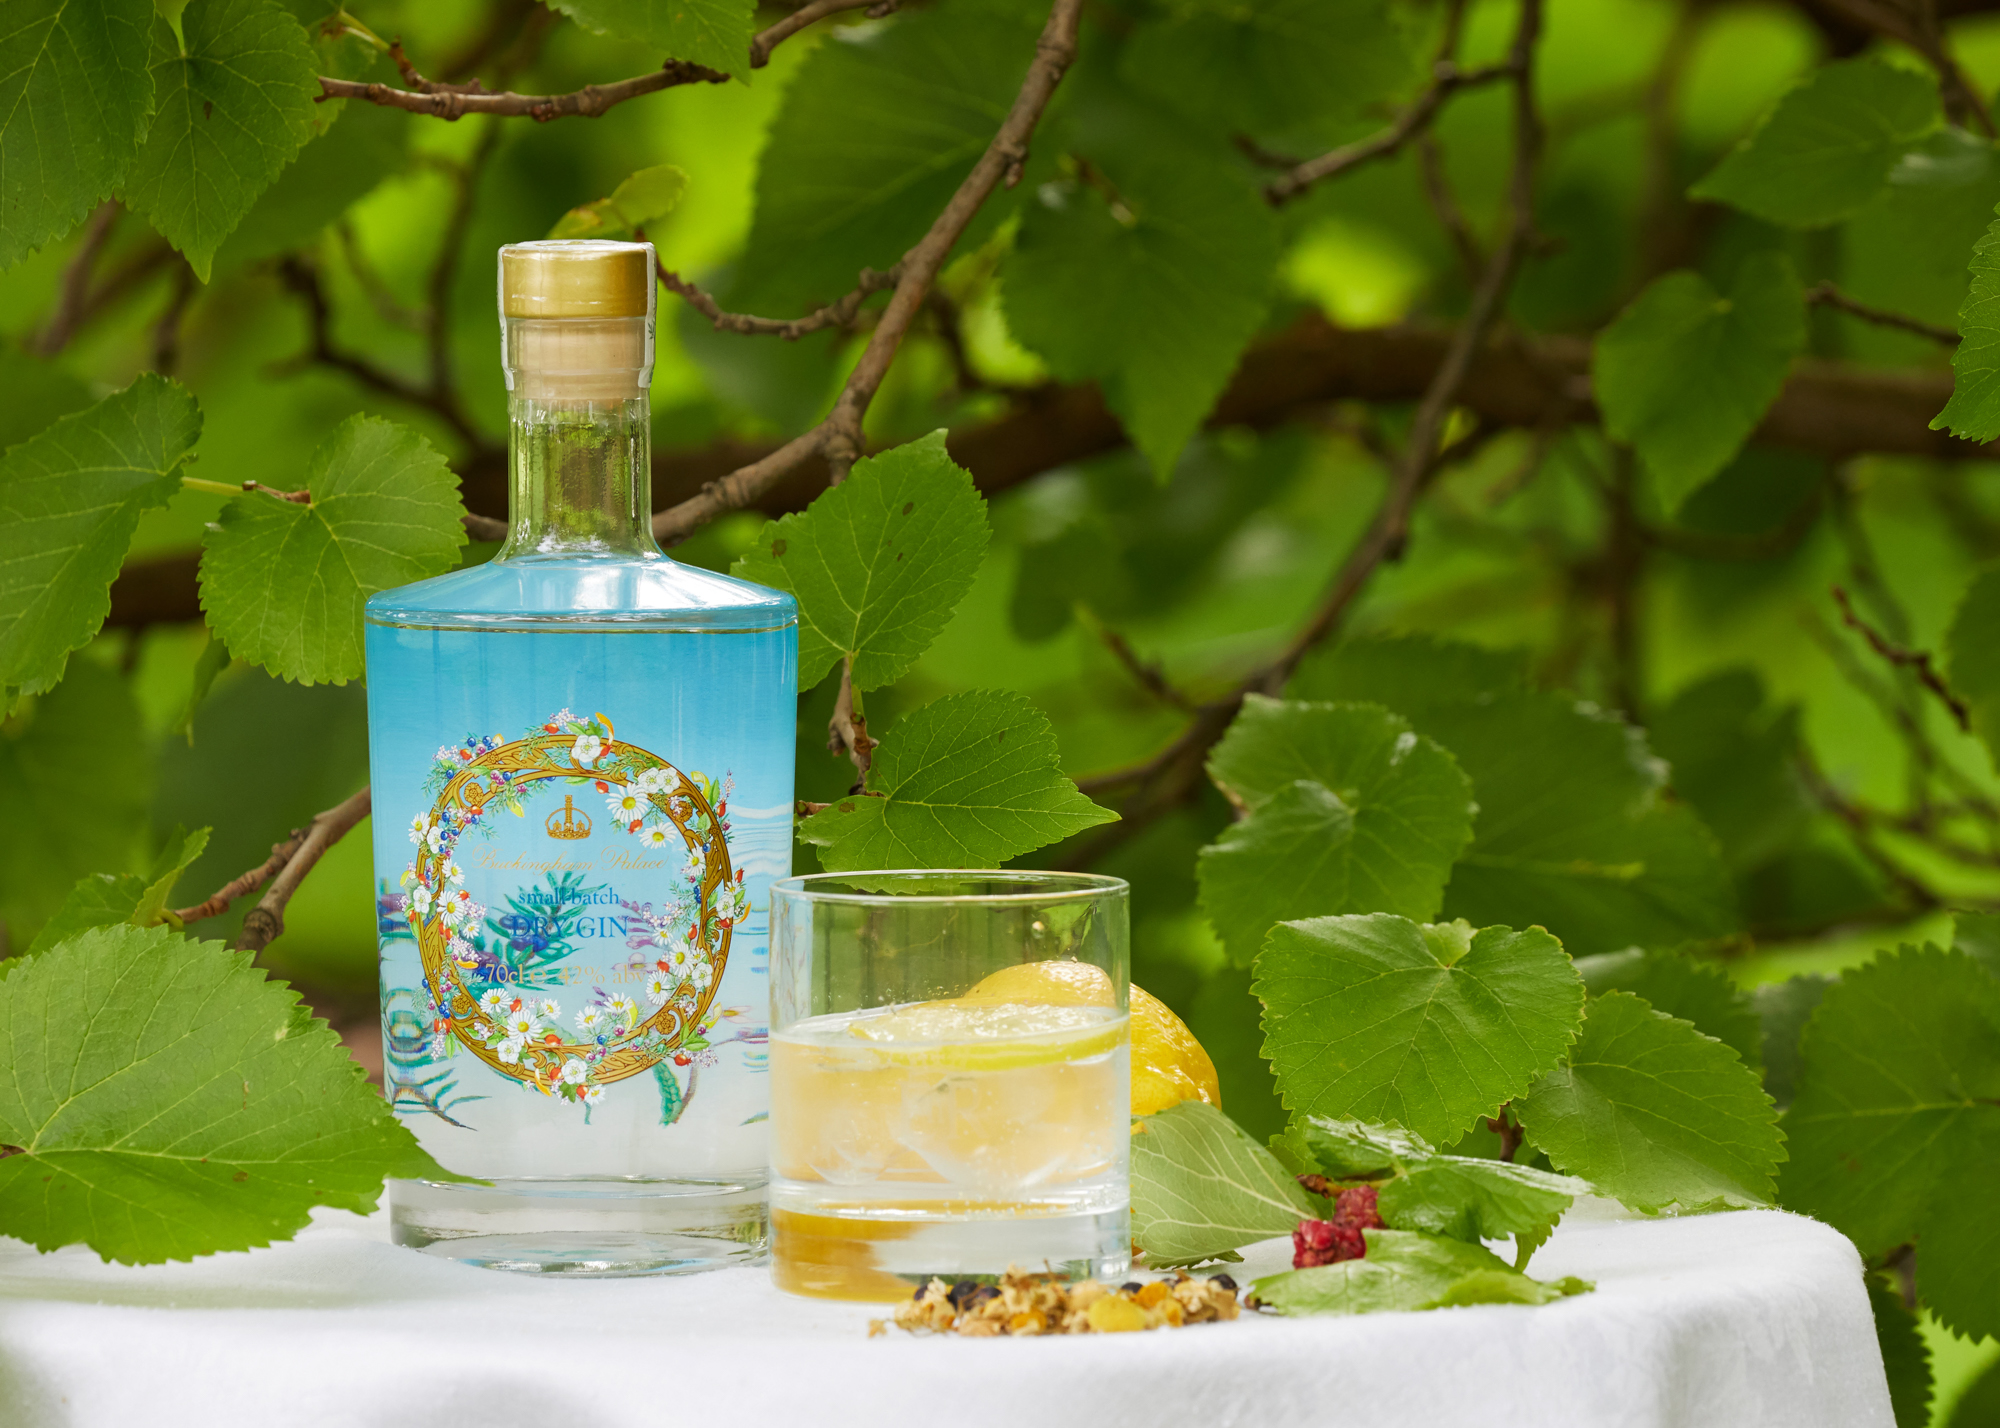 Gin created for Buckingham Palace